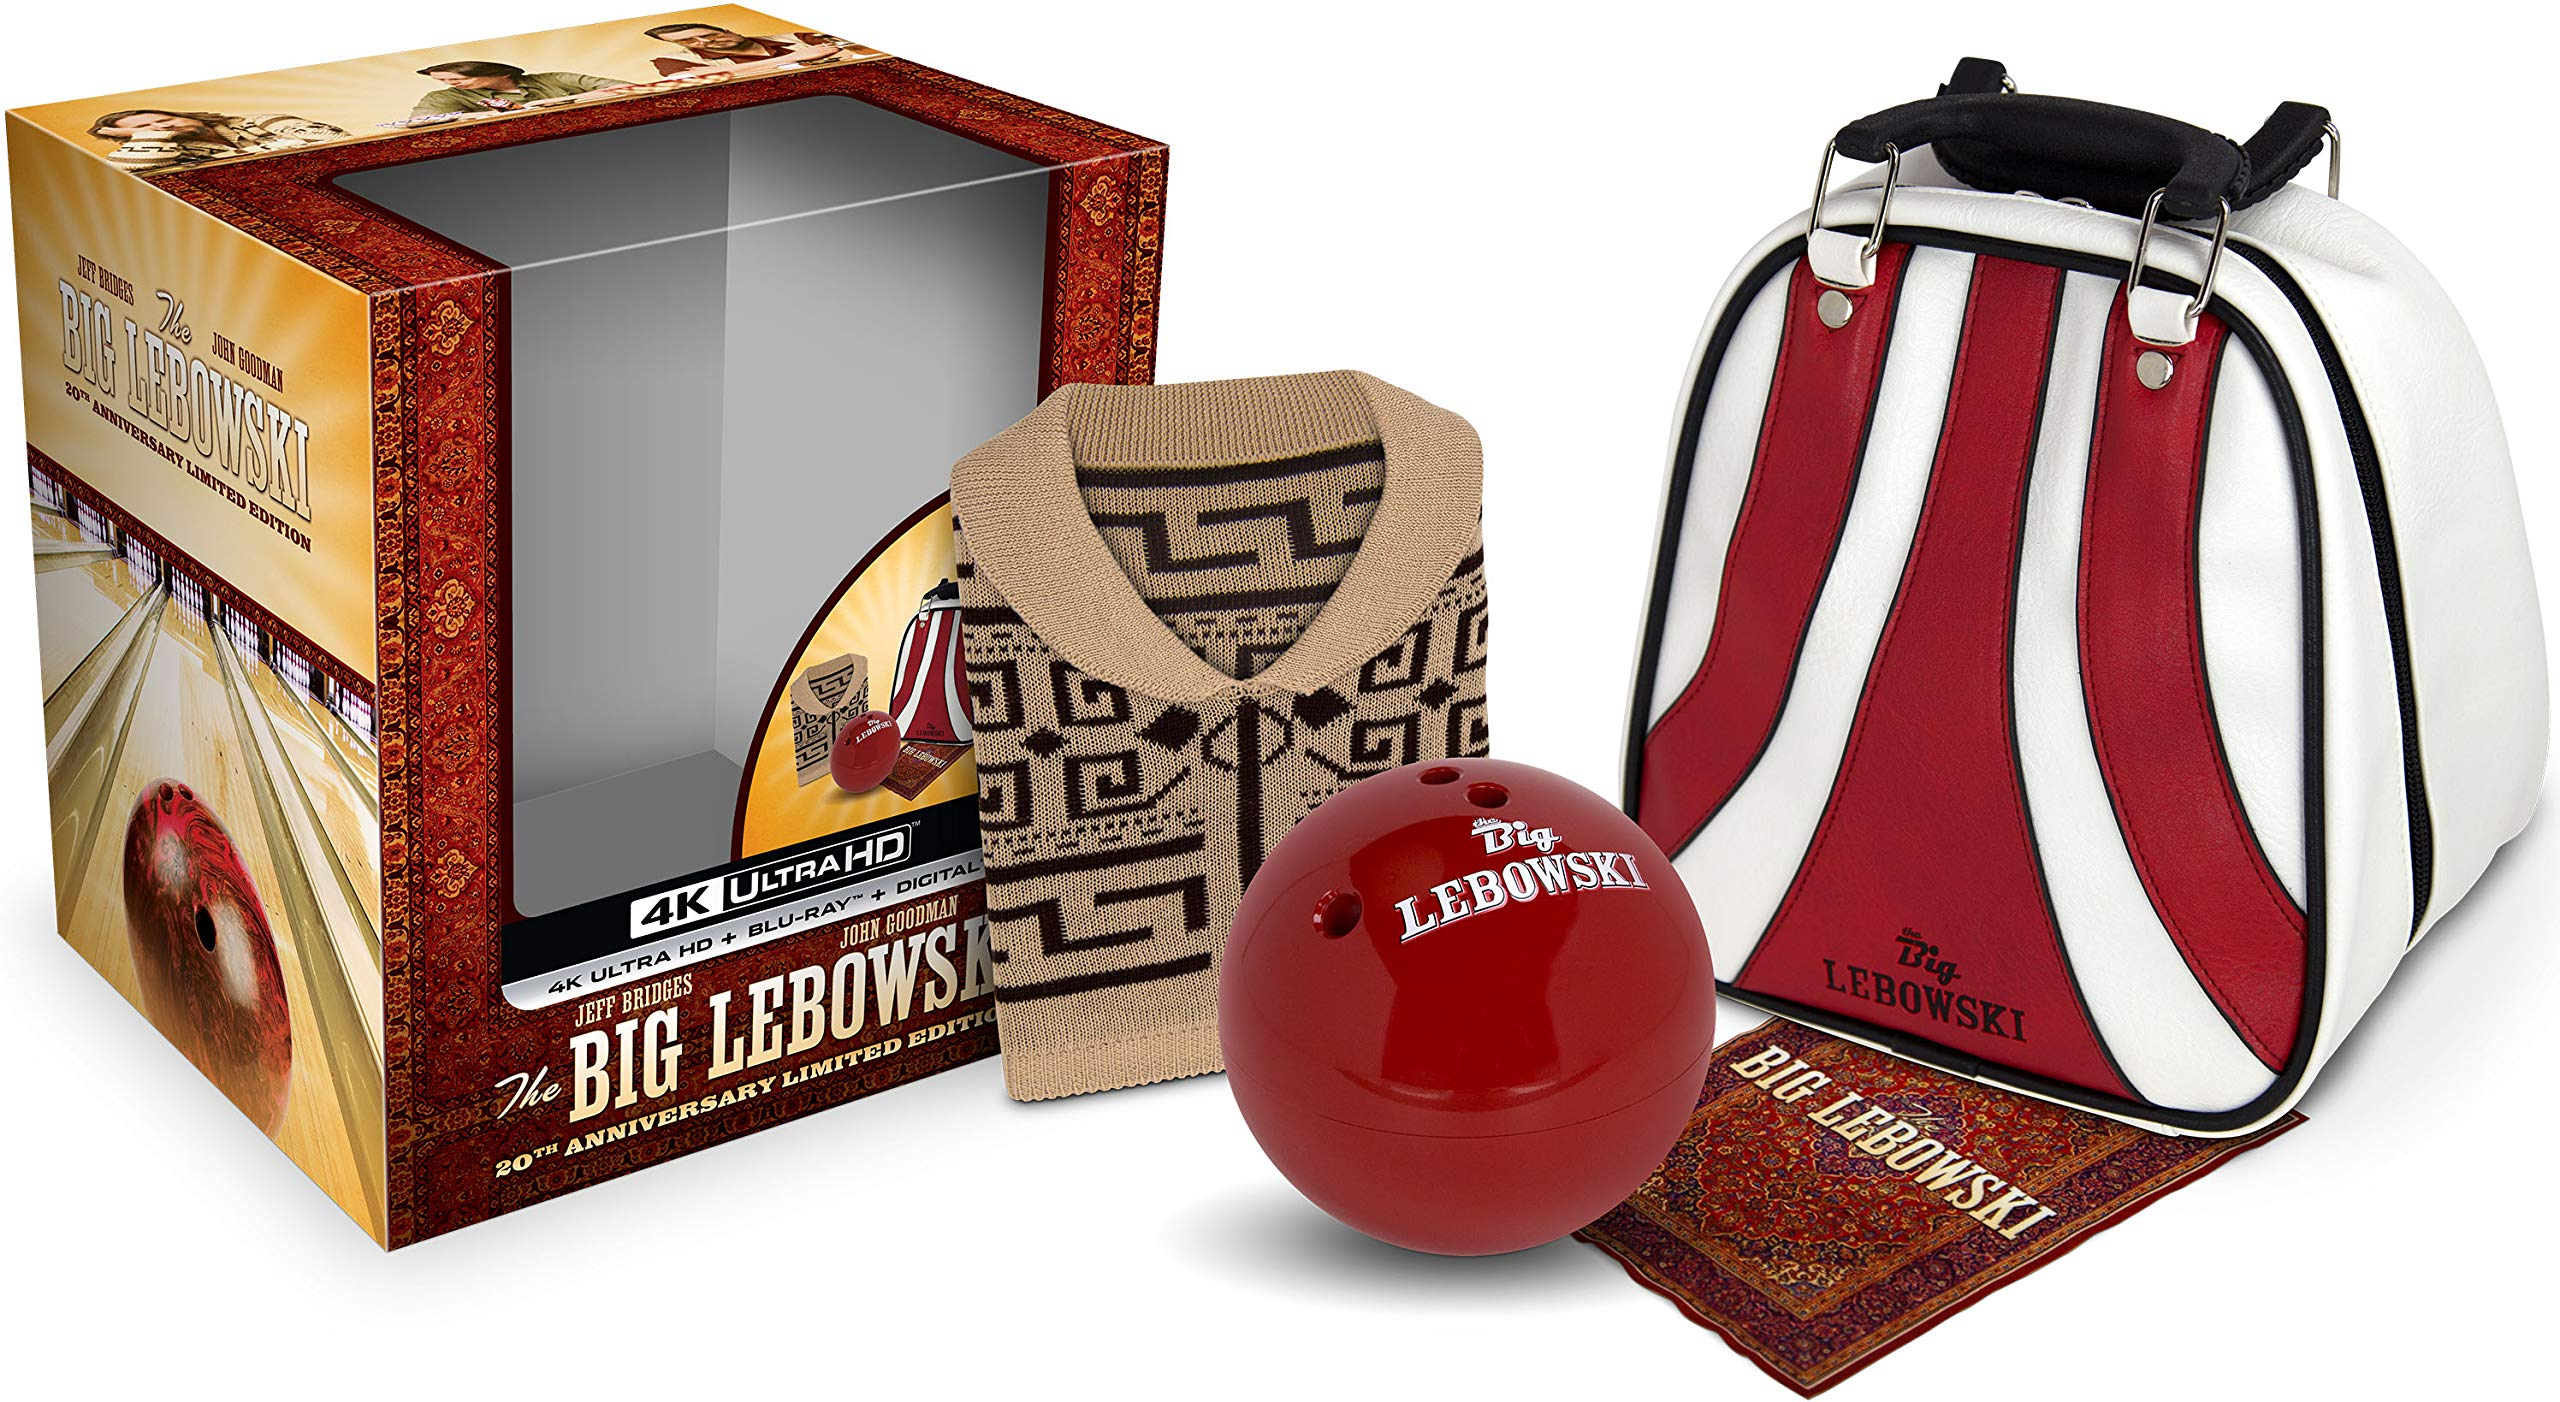 4K Blu-ray : The Big Lebowski: 20th Anniversary Edition (With Blu-ray, Limited Edition, 4K Mastering, Anniversary Edition, Gift Set)